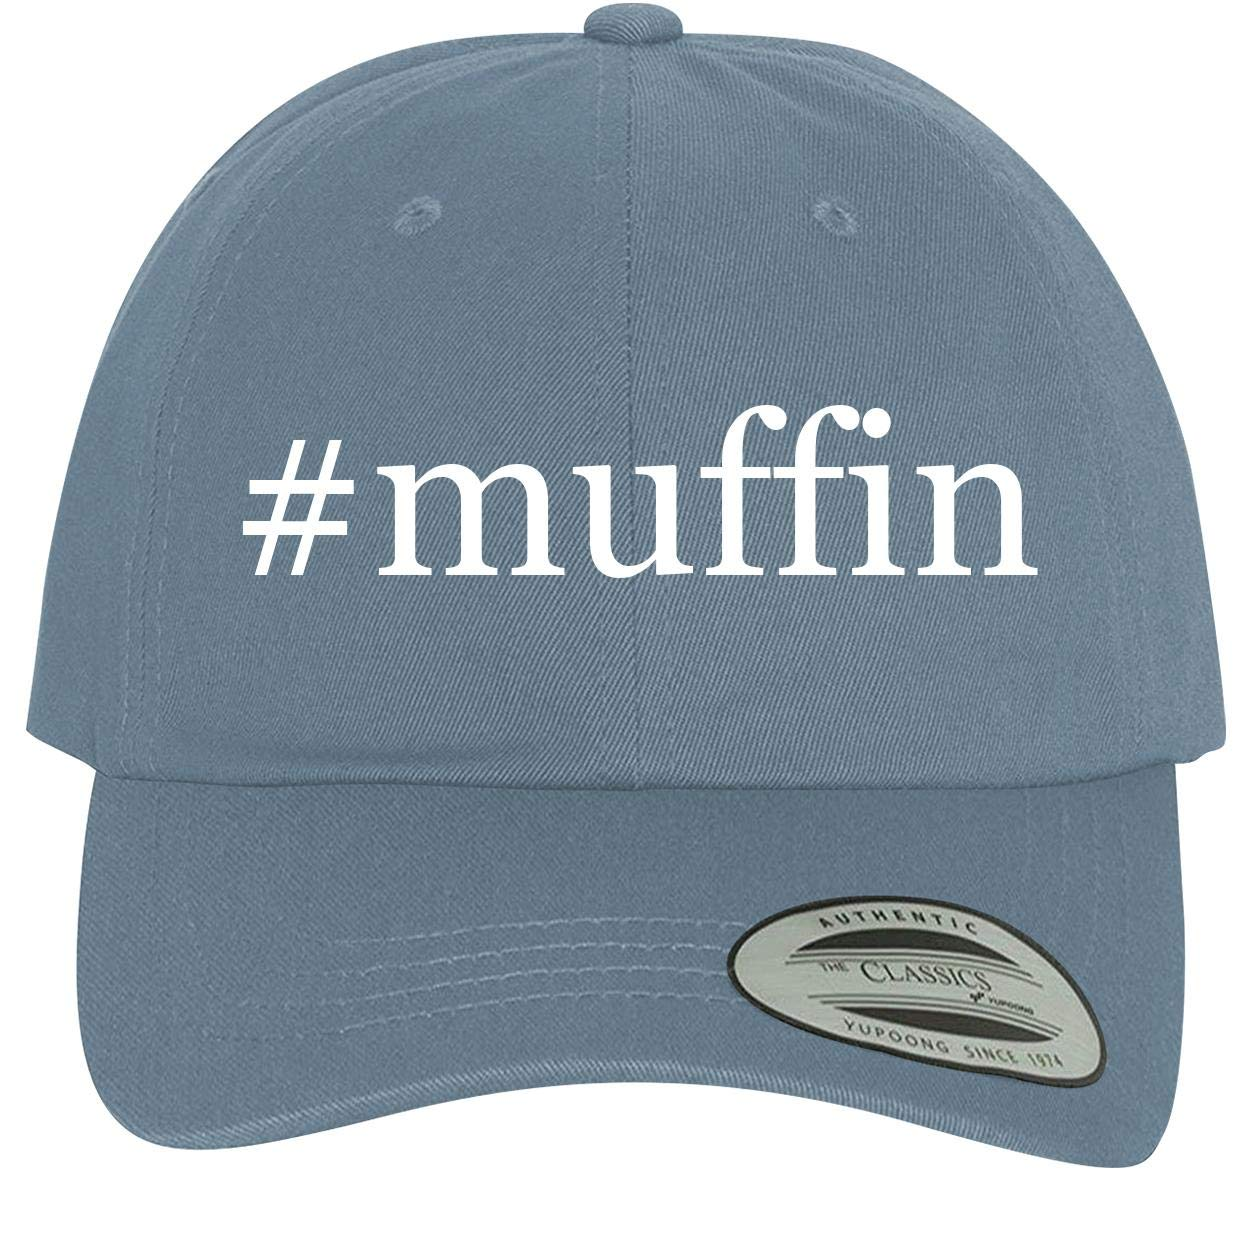 Comfortable Dad Hat Baseball Cap BH Cool Designs #Muffin